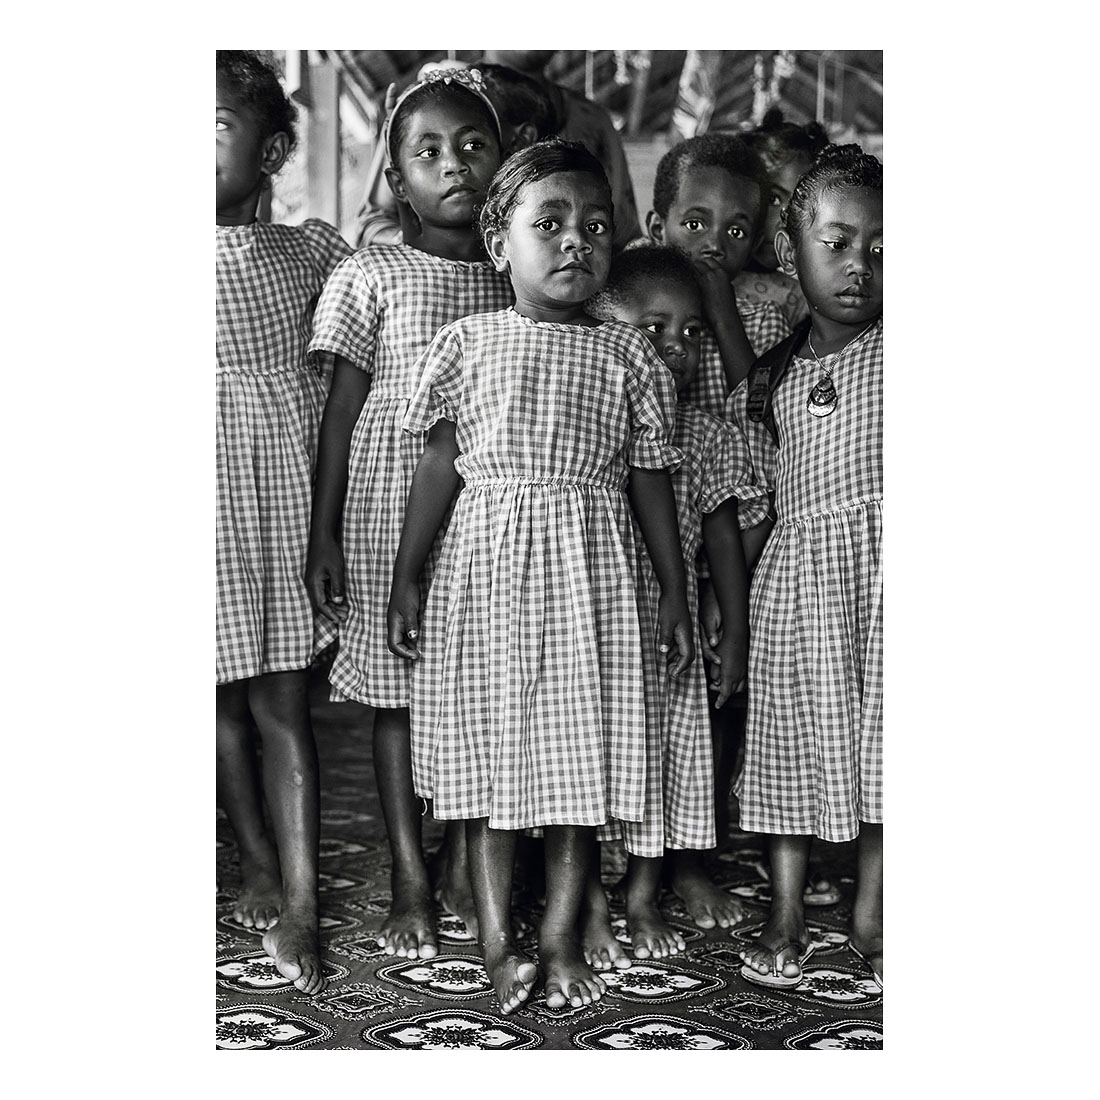 #8 Hulavu, Guadalcanal, Solomon Islands  (2016).  Archival pigment print on Ilford paper. Exhibition print 36cm x 24cm. Different sizes available.